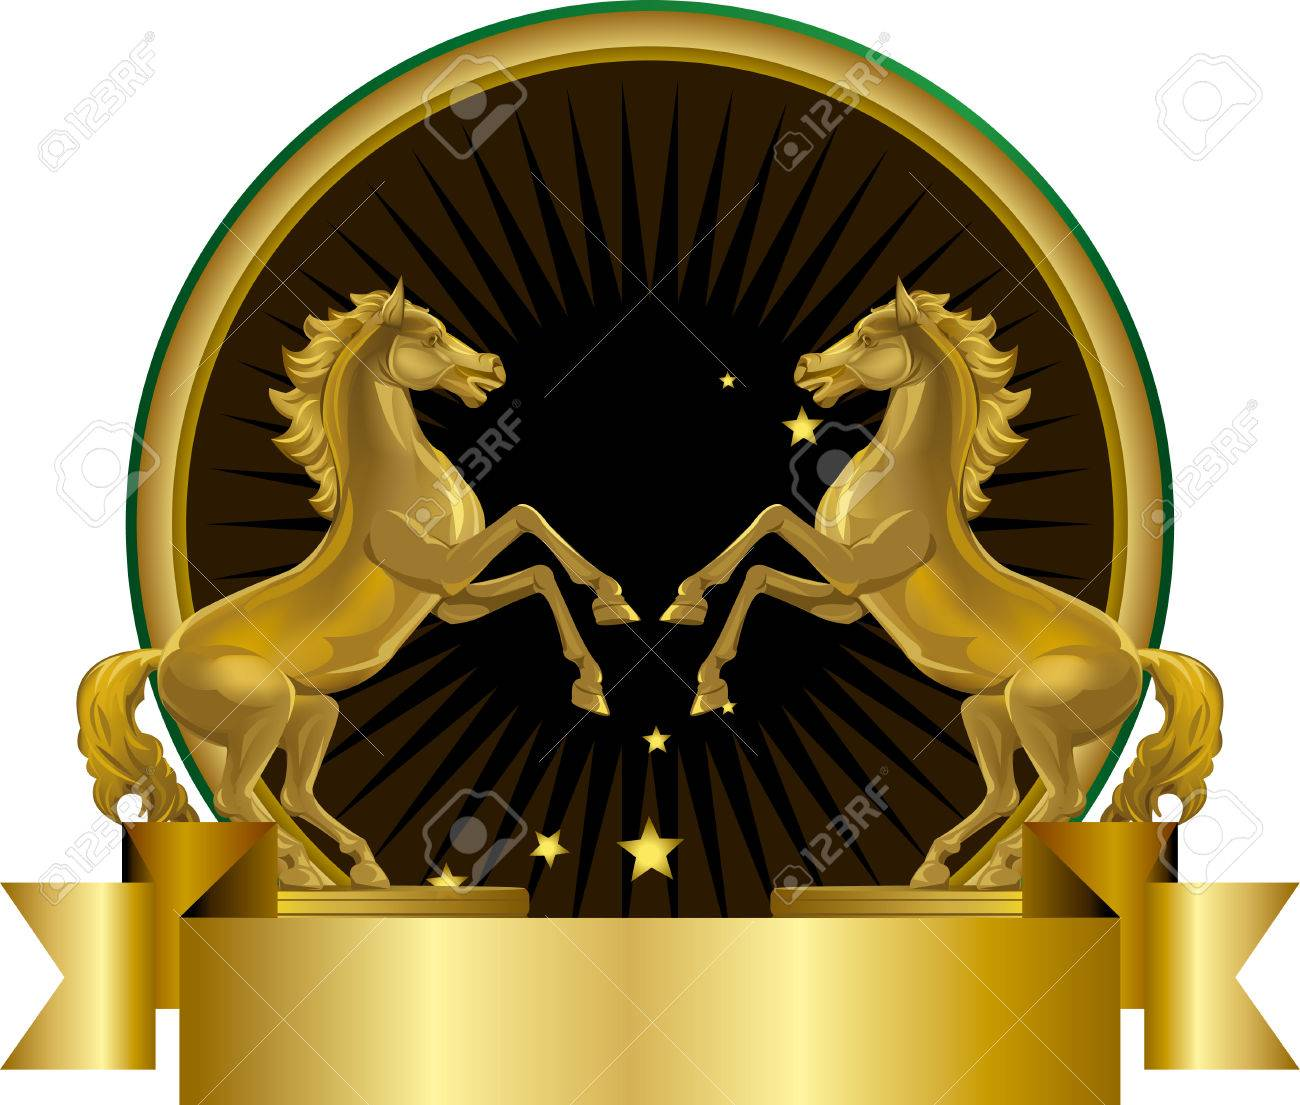 Golden Horse Illustration Royalty Free Cliparts Vectors And Stock Illustration Image 25127522